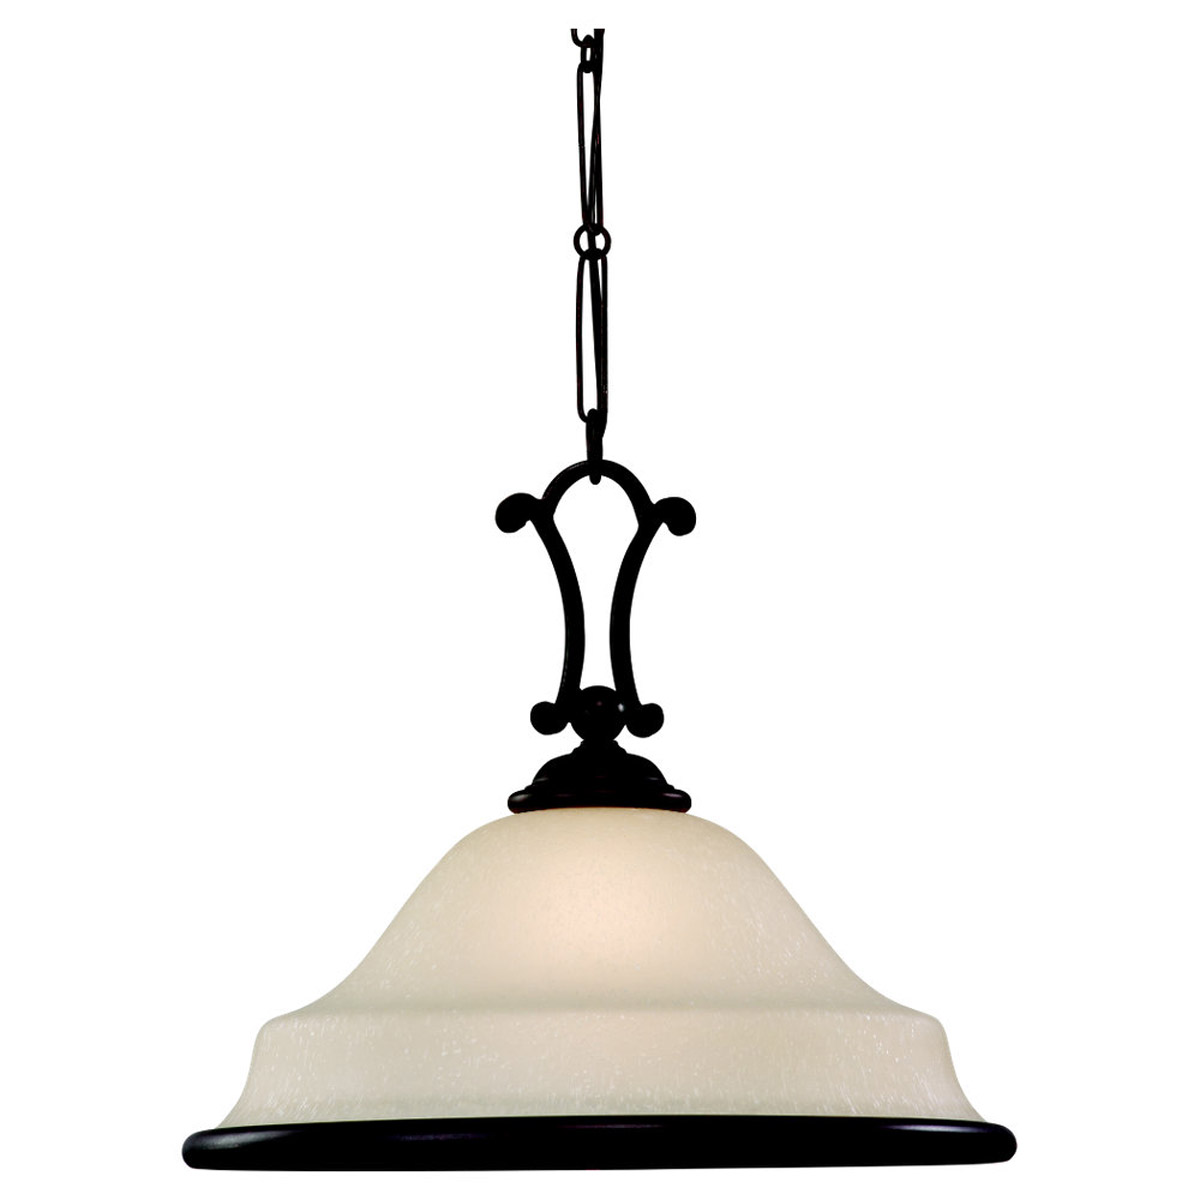 Sea Gull Lighting Acadia 1 Light Pendant in Misted Bronze 65145-814